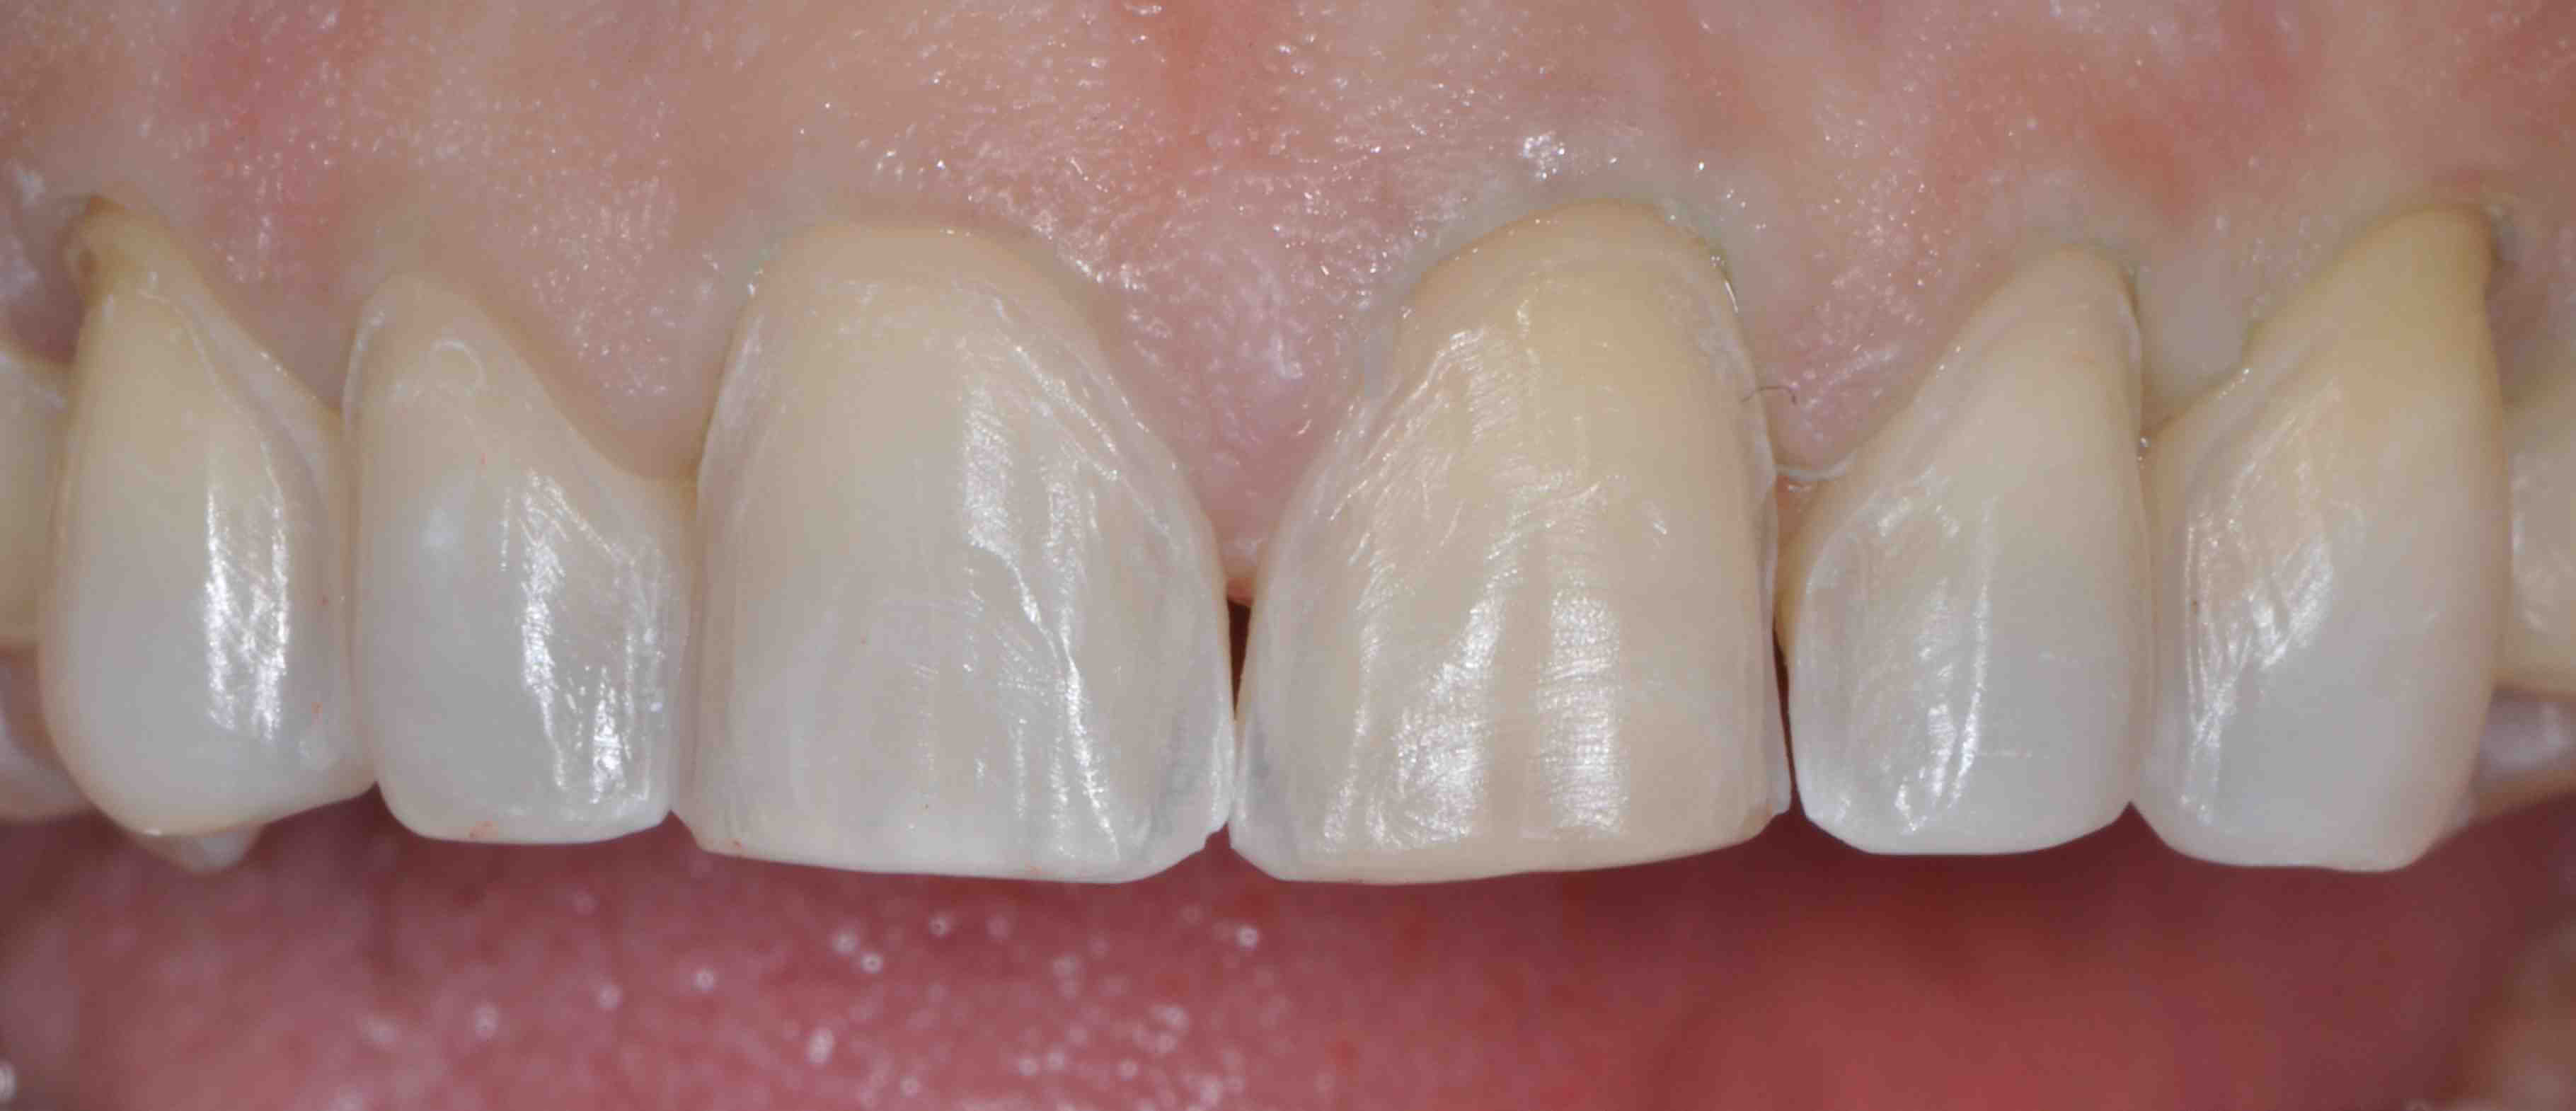 Porcelain Veneers, Why Prep?